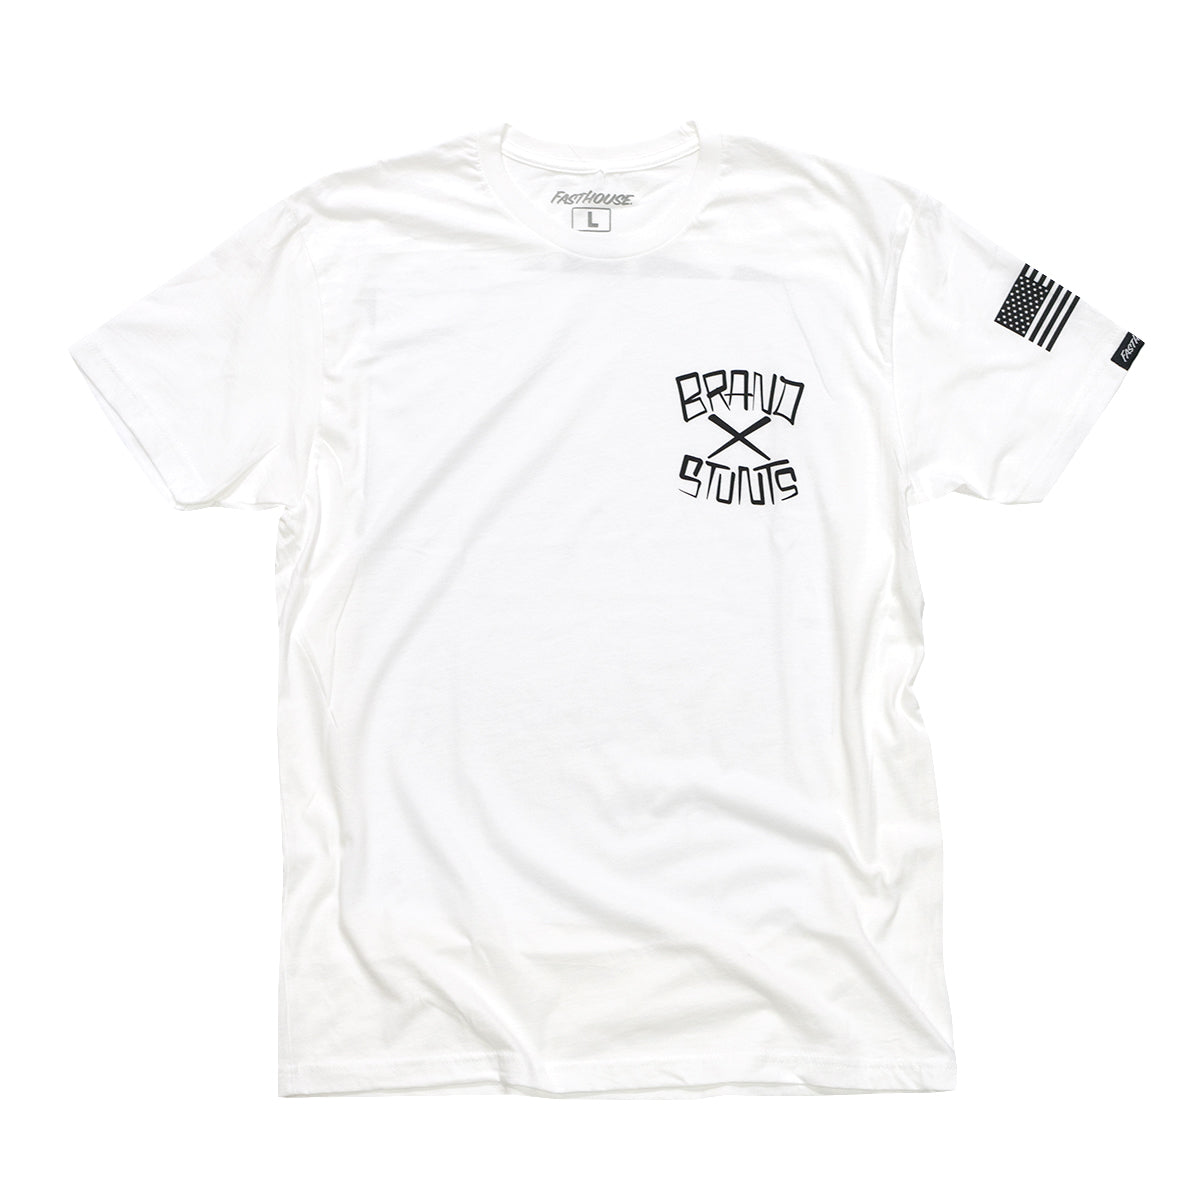 Fasthouse - Brand X Good to Go Tee- White